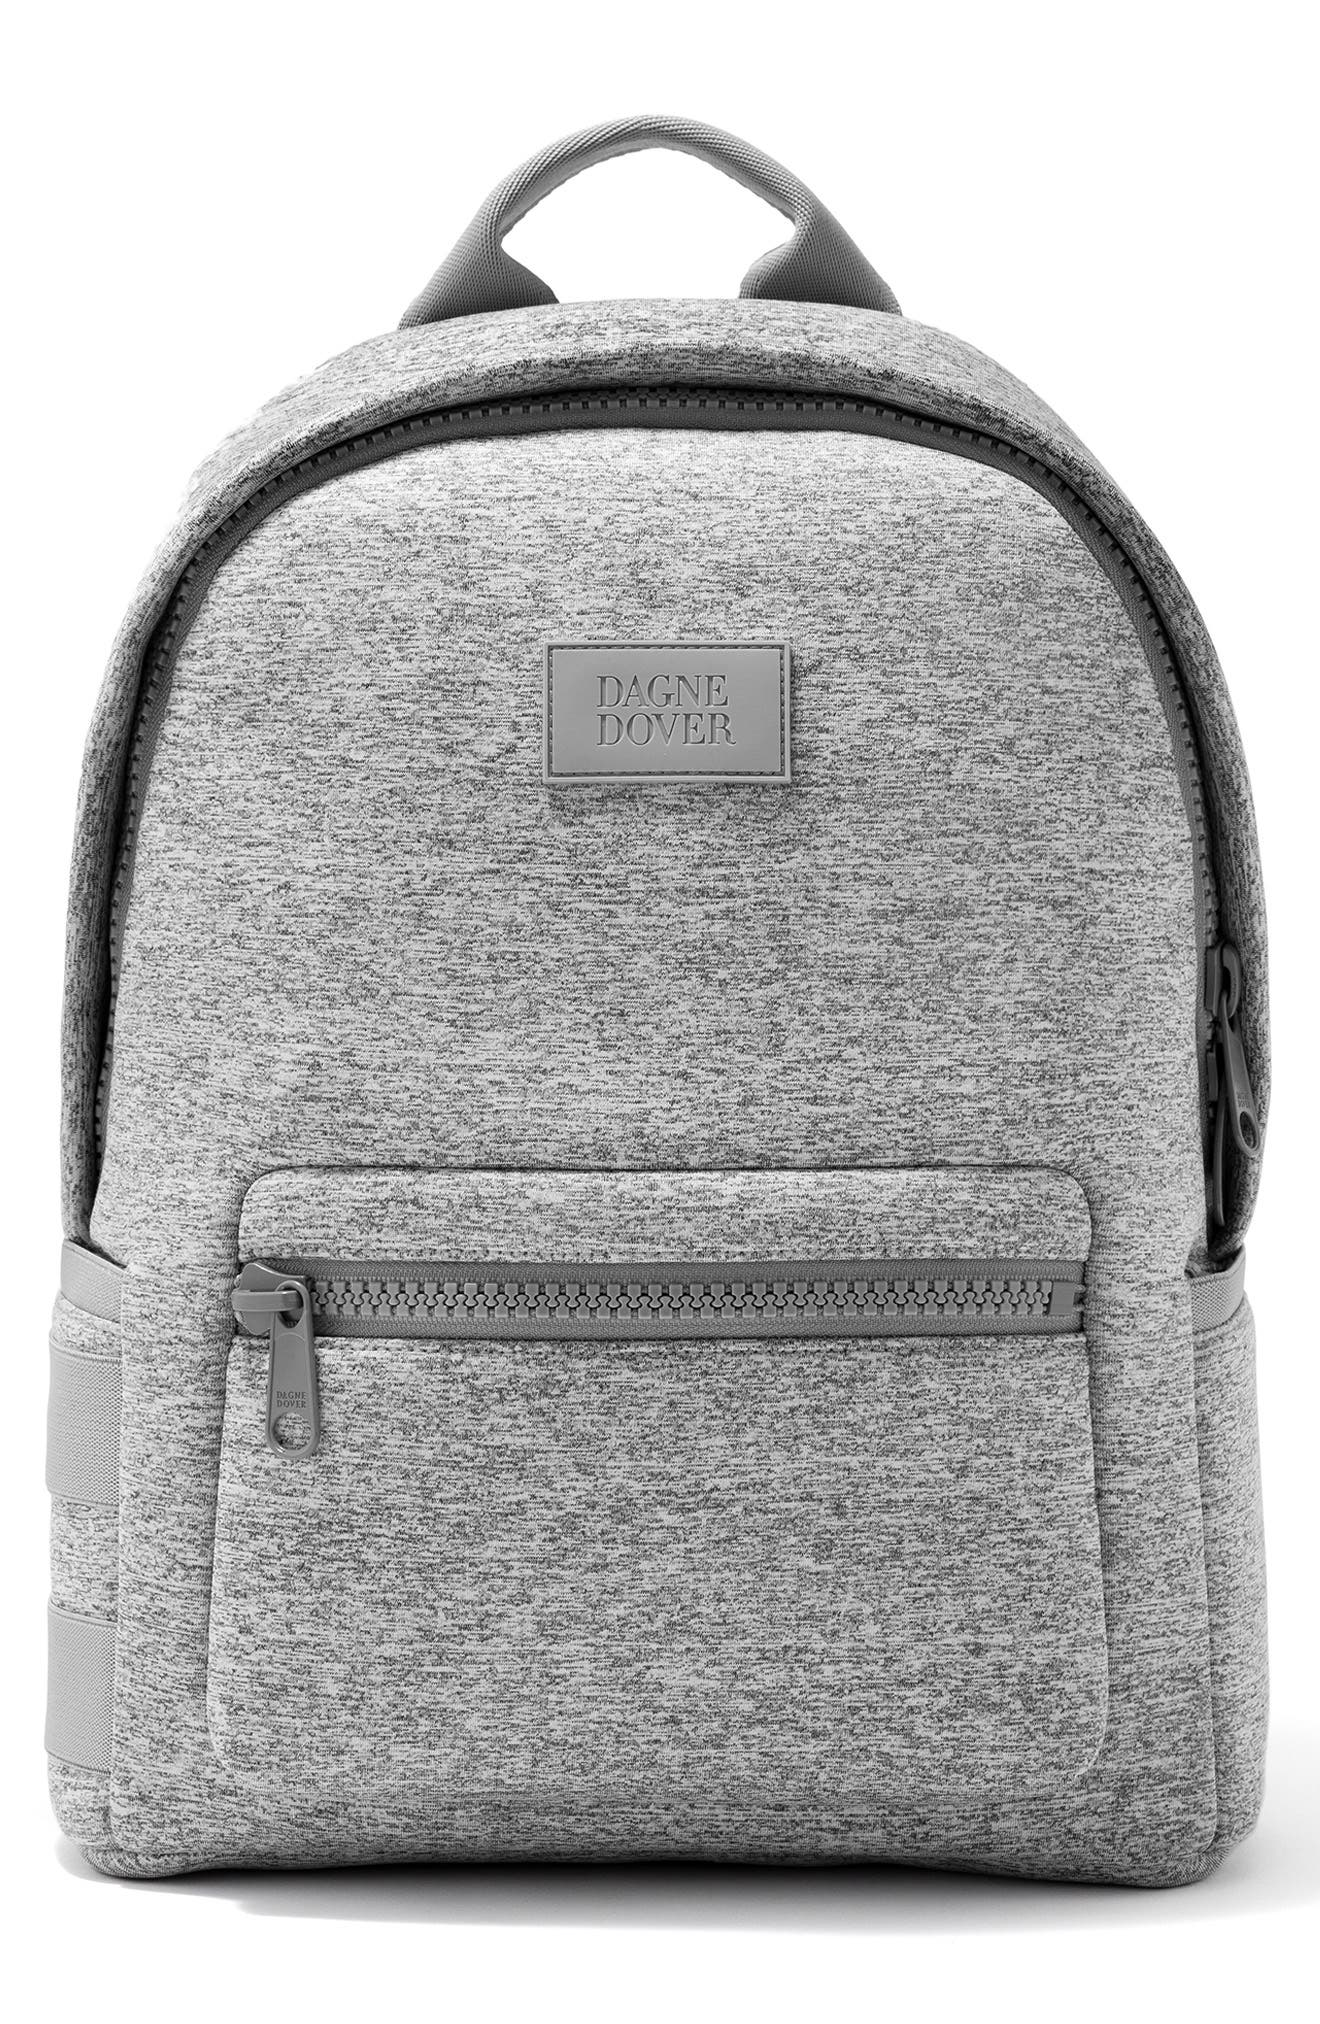 365 Dakota Neoprene Backpack,                         Main,                         color, HEATHER GREY